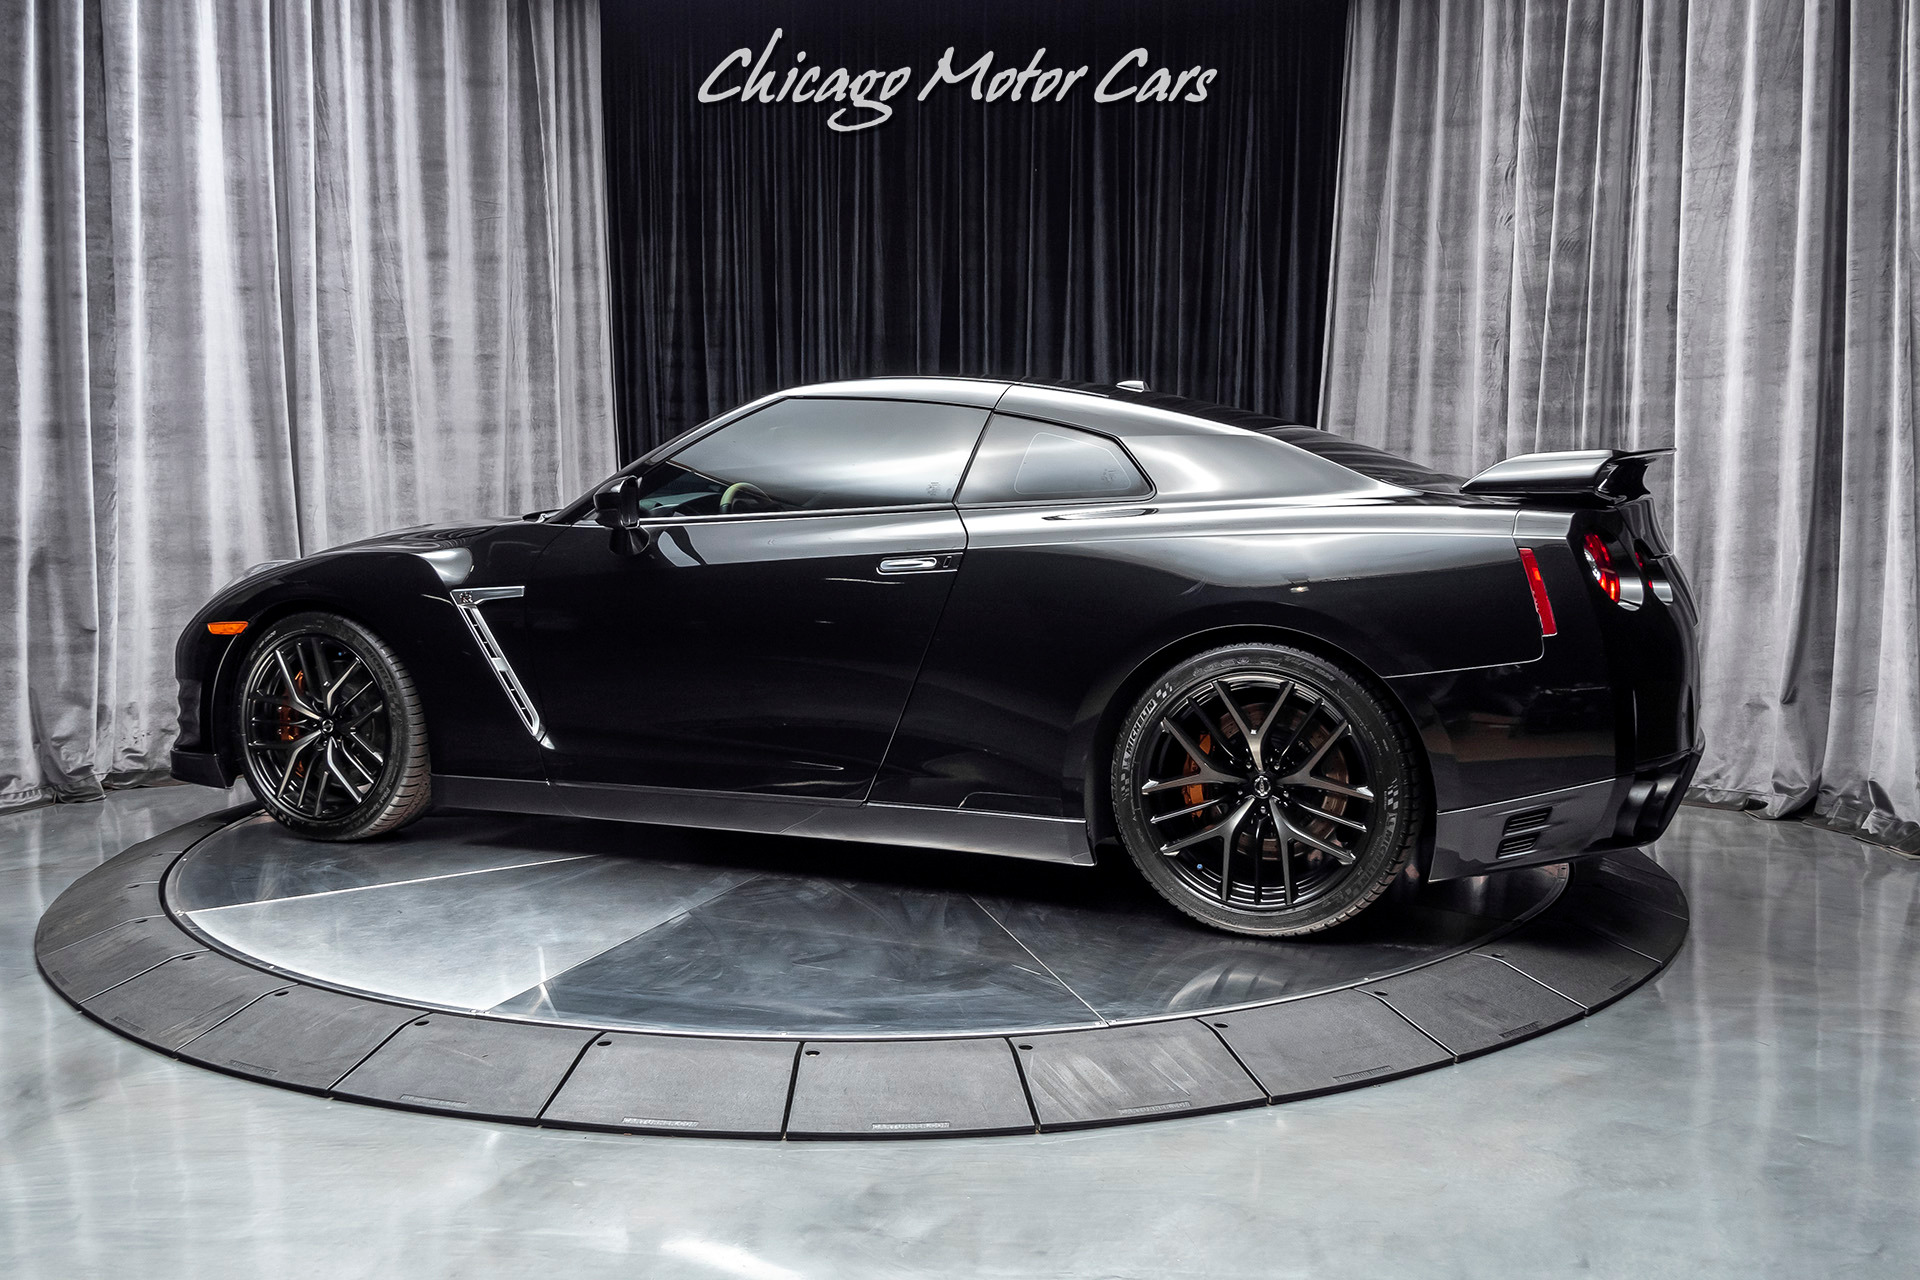 Used-2016-Nissan-GT-R-Premium-Coupe-778-WHEEL-HORSEPOWER-FULL-BOLT-ON-WITH-UPGRADED-TURBOS